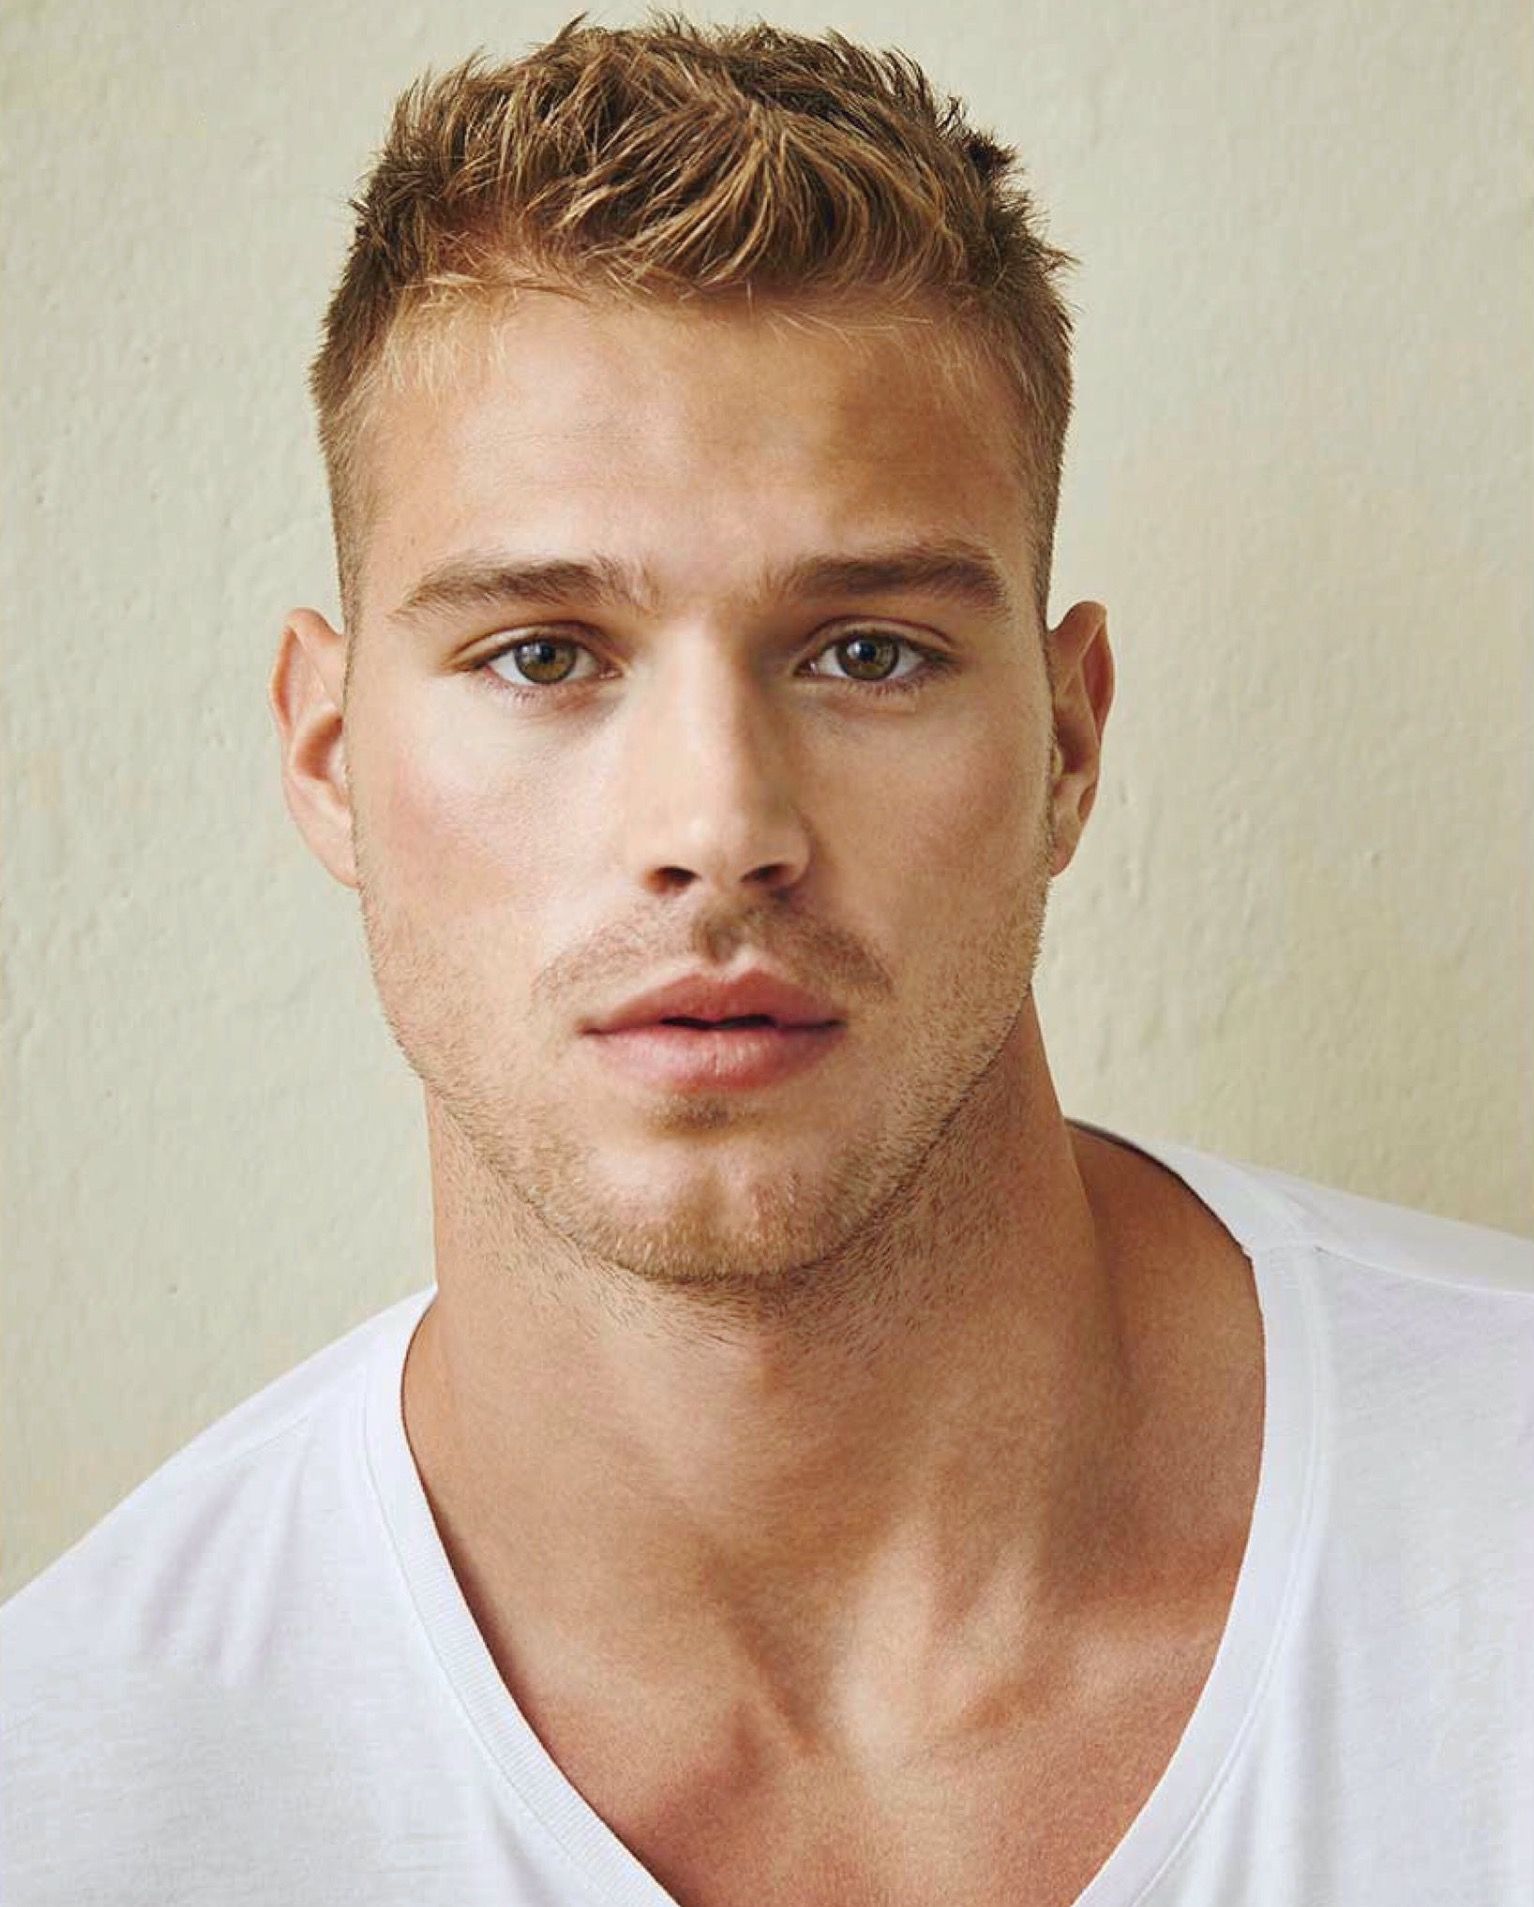 Haircuts for round faces men pin by southern gent on matthew noszka  pinterest  face man hair